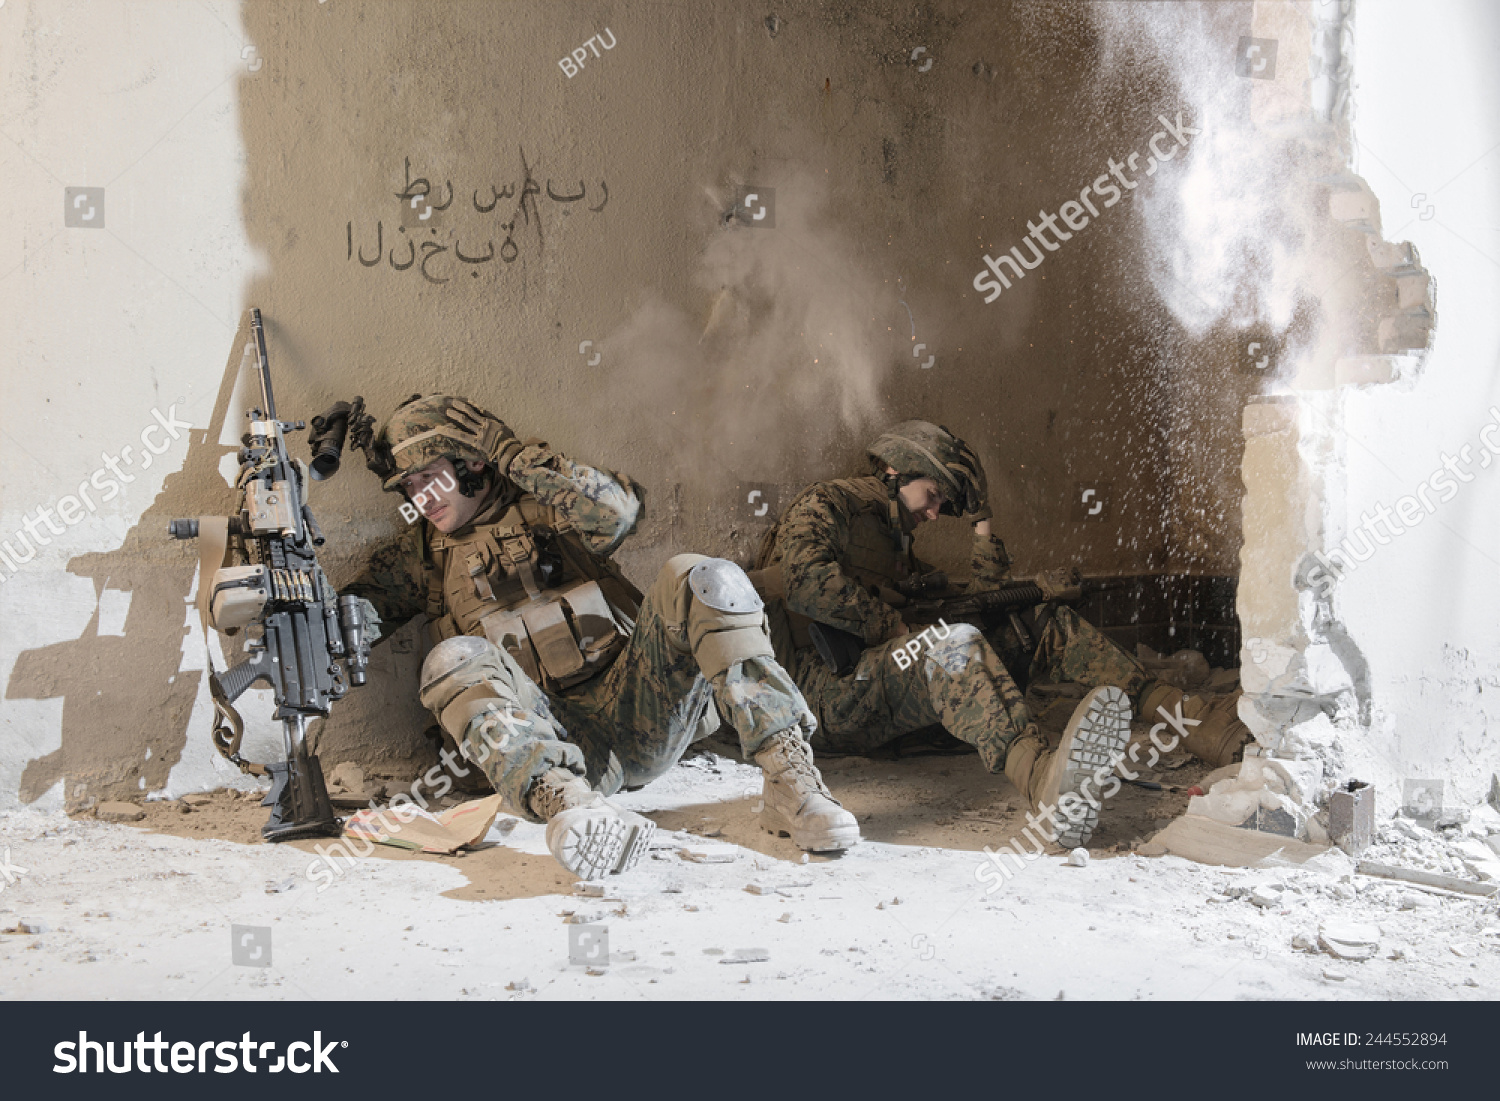 post traumatic stress disorder in iraq veterans essay In an essay for the national center for ptsd, dr matthew friedman writes that it   in 6 iraq and afghanistan war veterans suffered from ptsd or depression and .